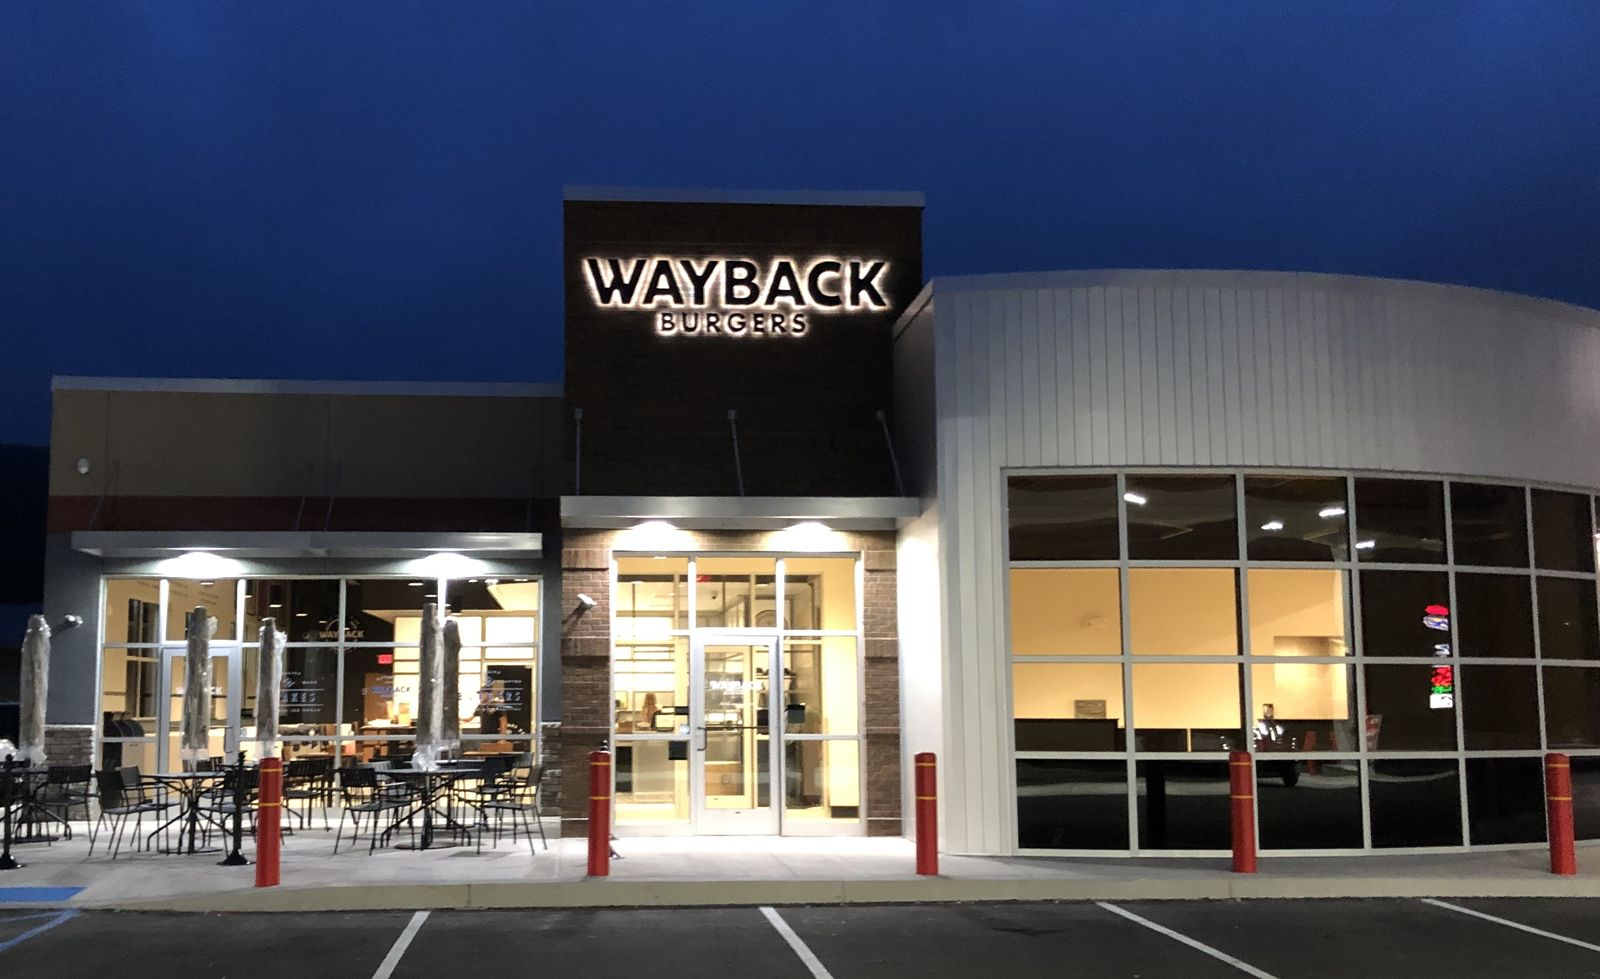 Wayback Burgers Opens a New Location Concept Restaurant